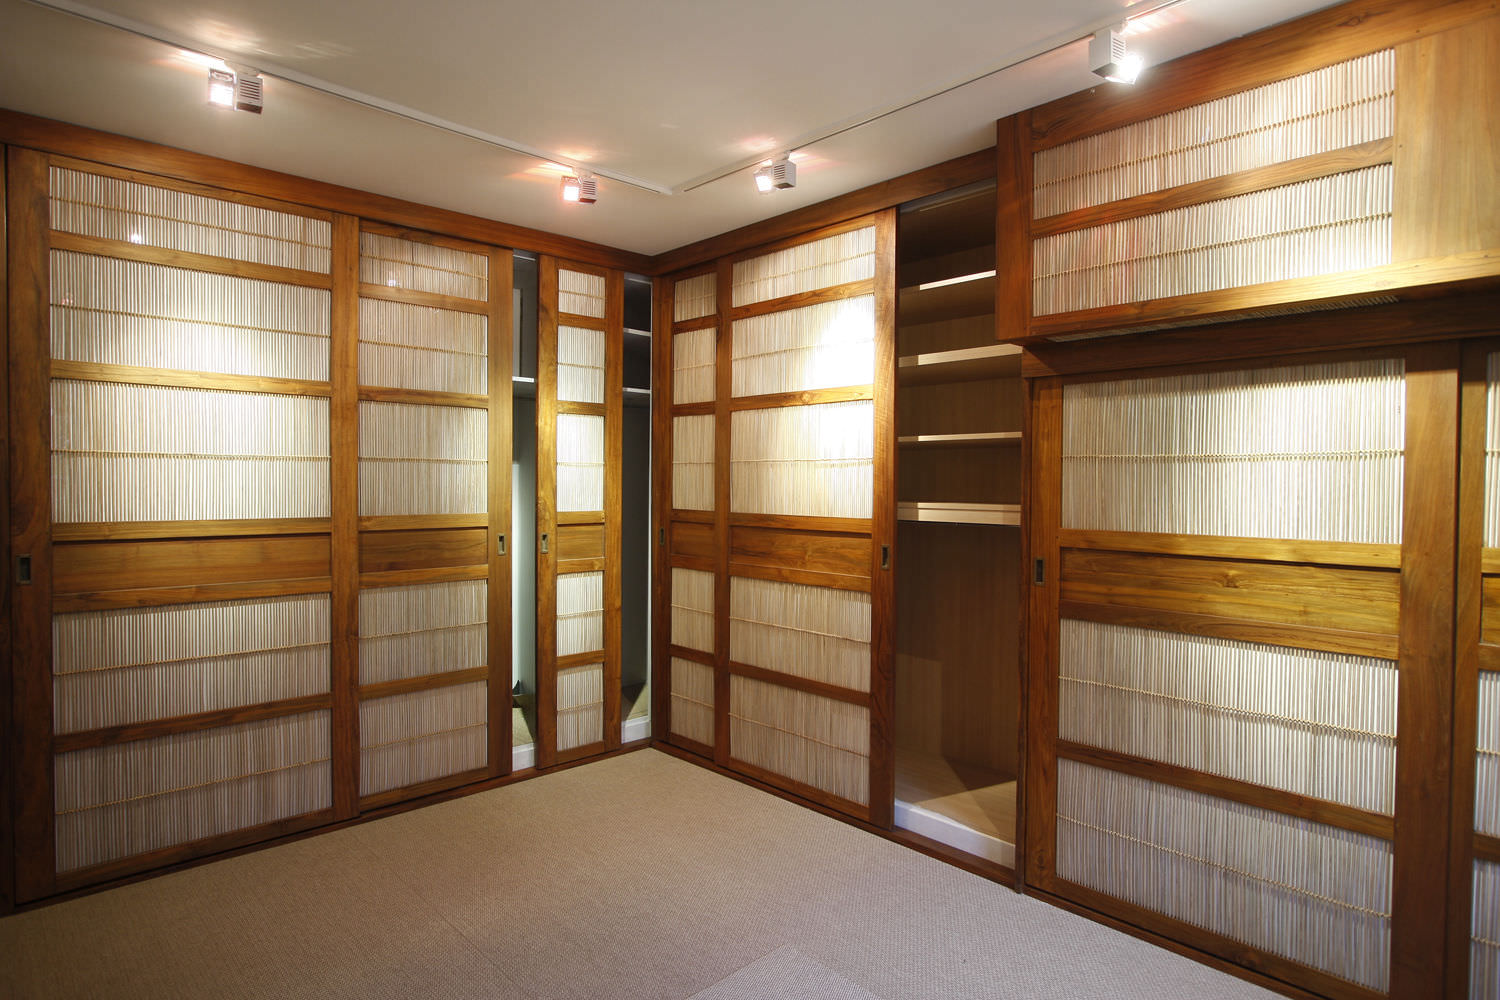 fresh hypermallapartments ideas beautiful sliding closet doors options and hgtv design of